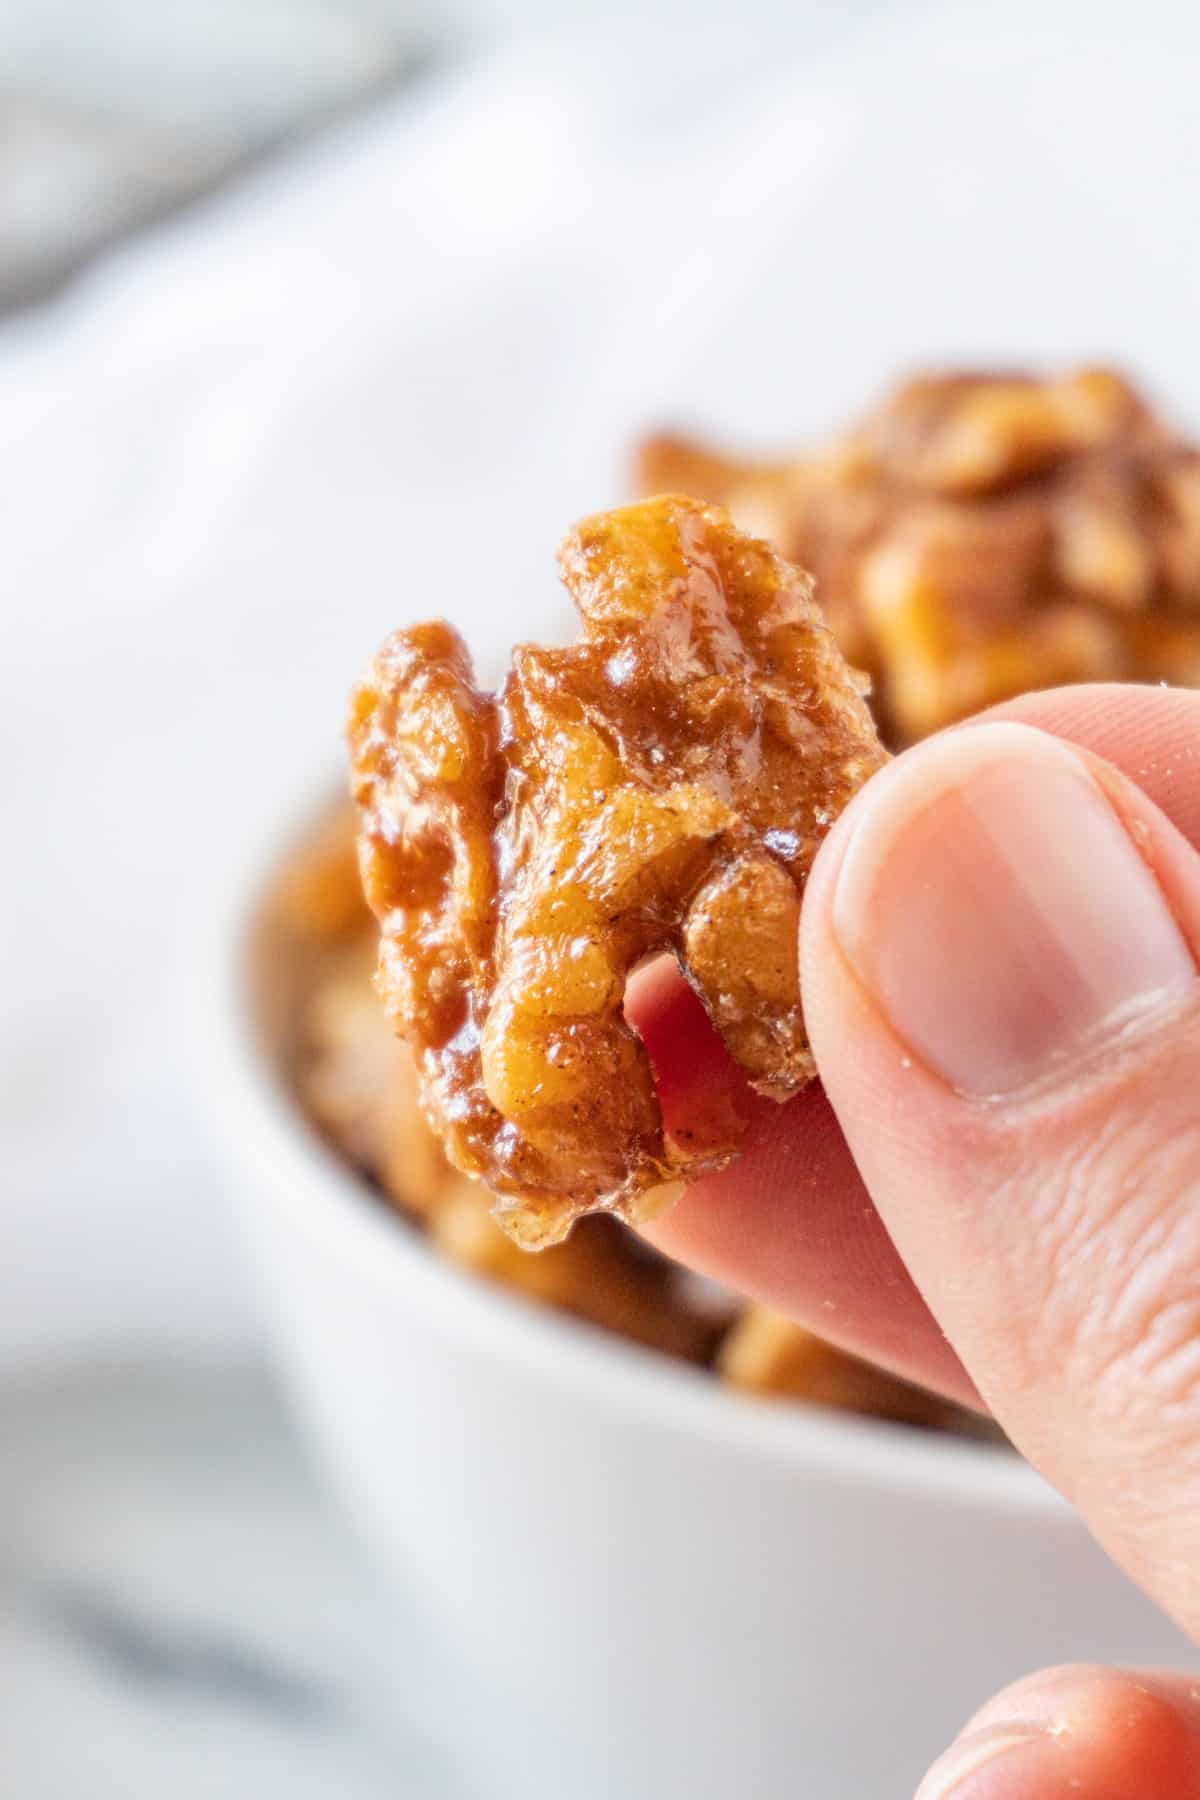 holding a candied walnuts